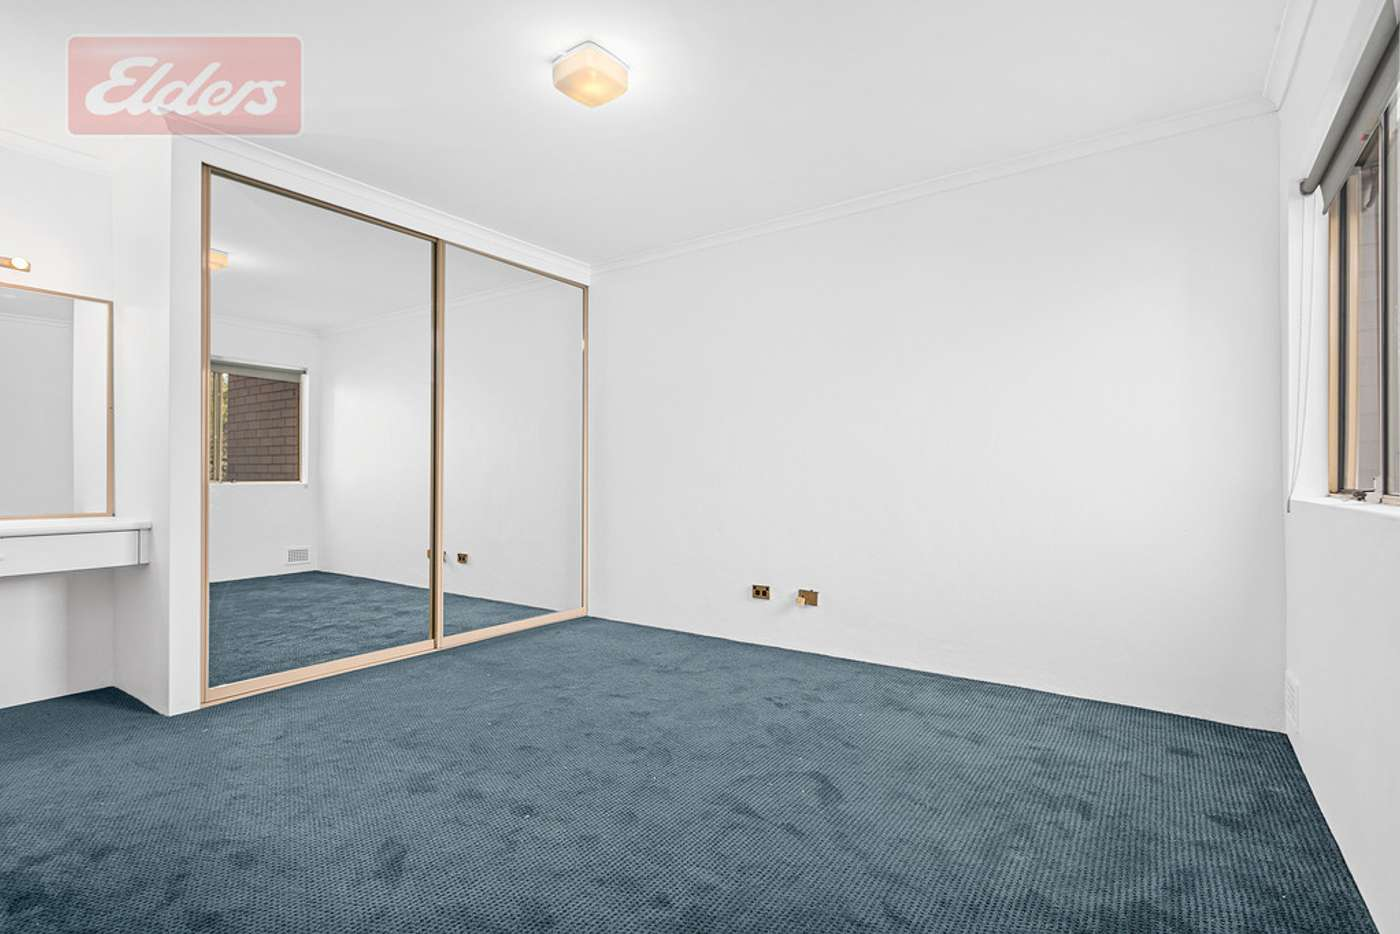 Sixth view of Homely apartment listing, 34/3 Ramu Close, Sylvania Waters NSW 2224